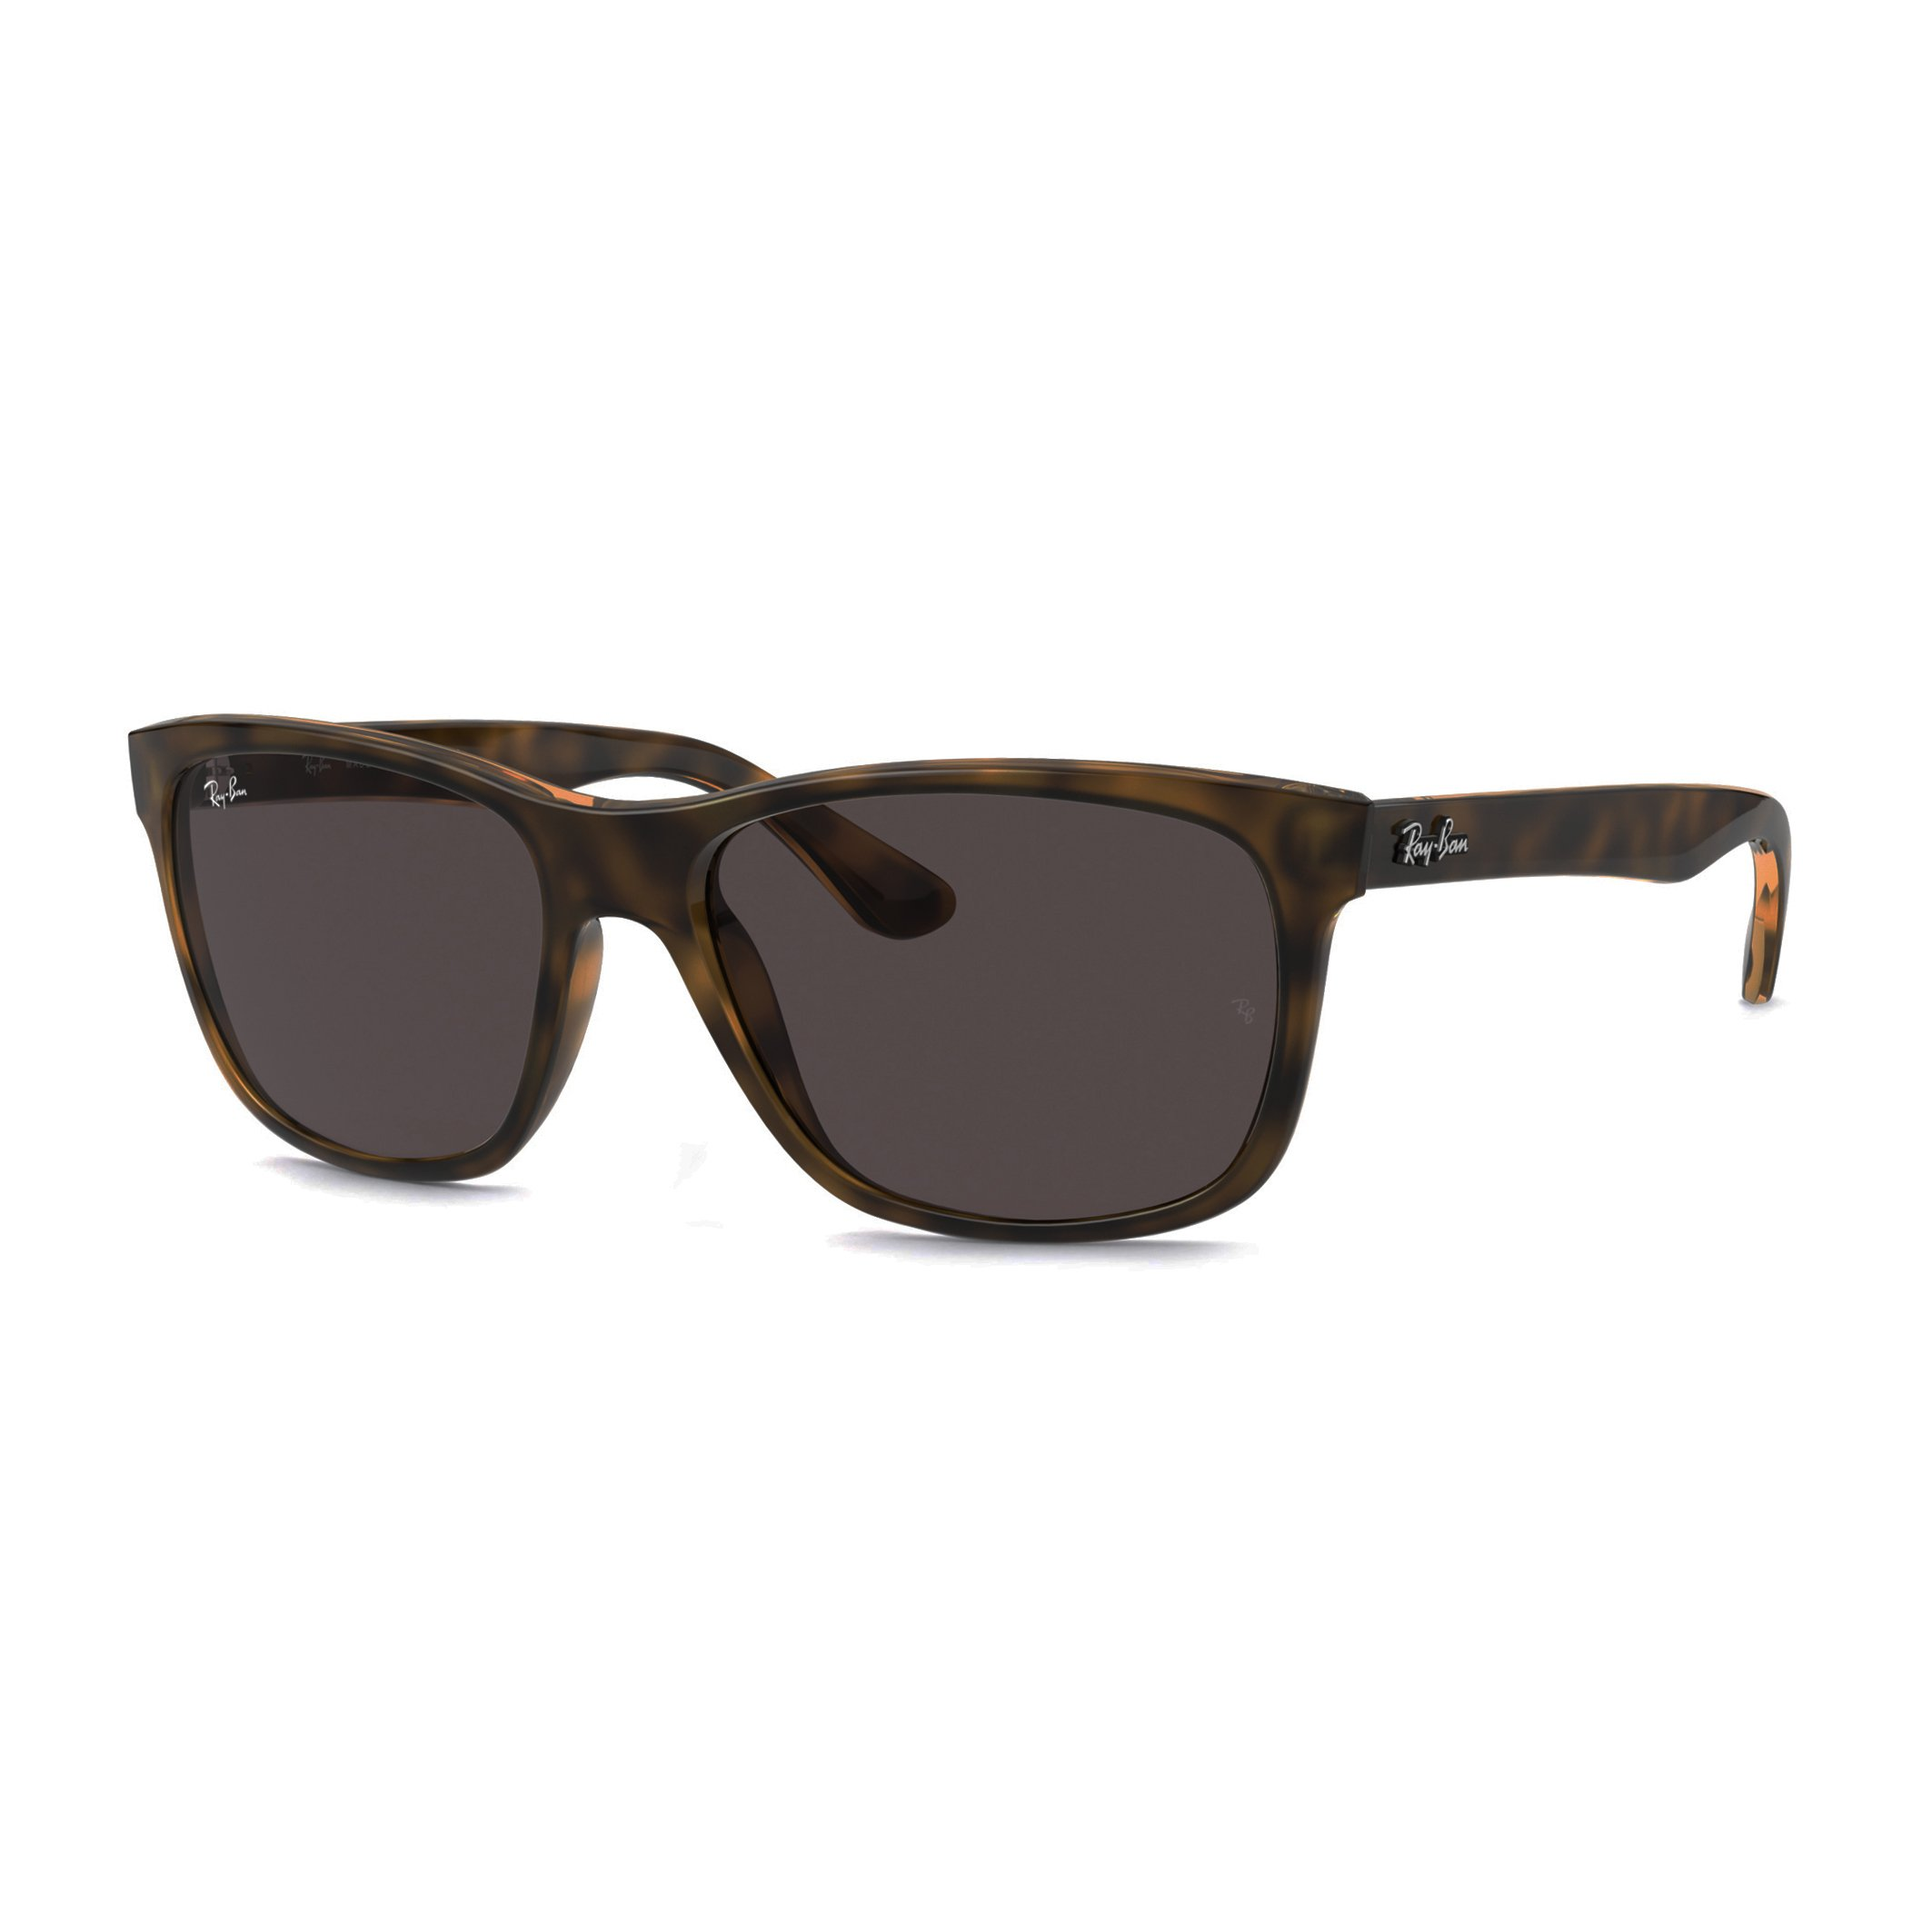 Ray-Ban Unisex Sunglasses Various Colours 0RB4181 - brown NOSIZE